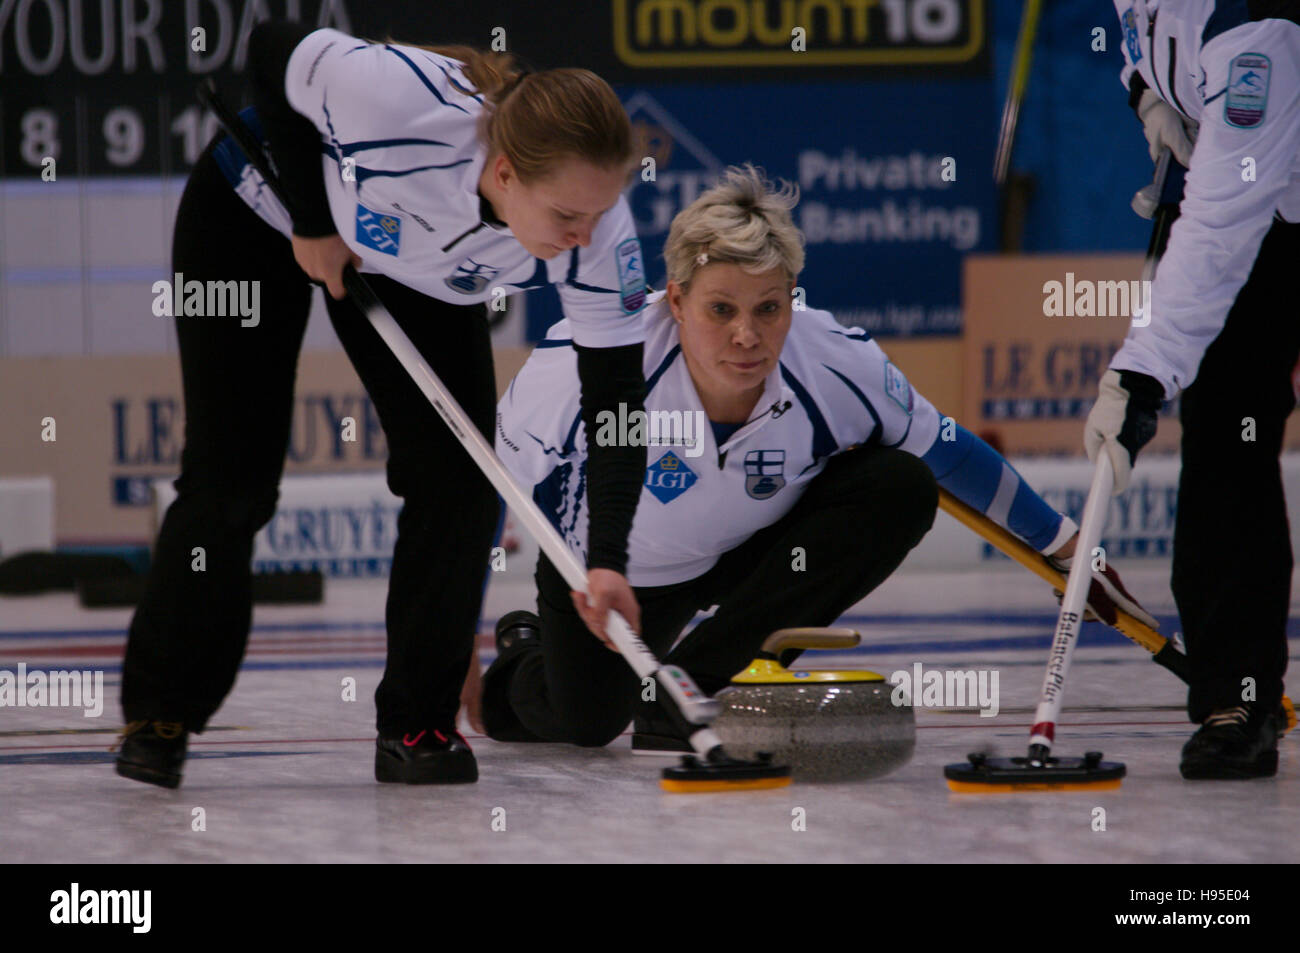 Braehead Arena, Renfrewshire, Scotland, 19 November 2016. Anne Malmi, skip of Finland, delivering a stone during - Stock Image